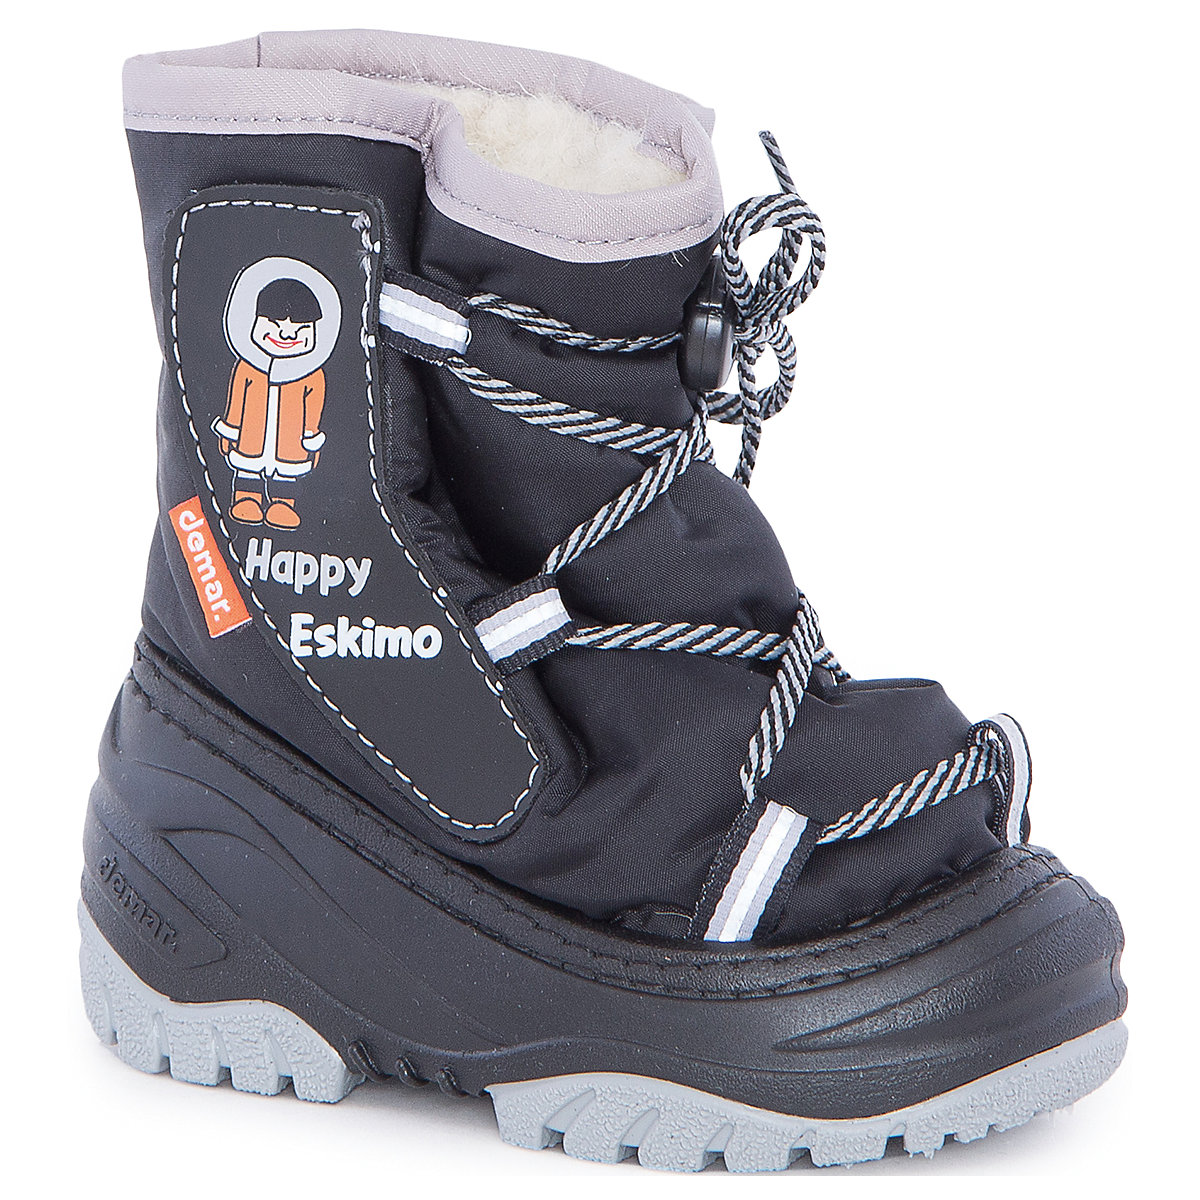 Boots Demar For Boys 6835181 Valenki Uggi Winter Baby Kids Children Shoes MTpromo